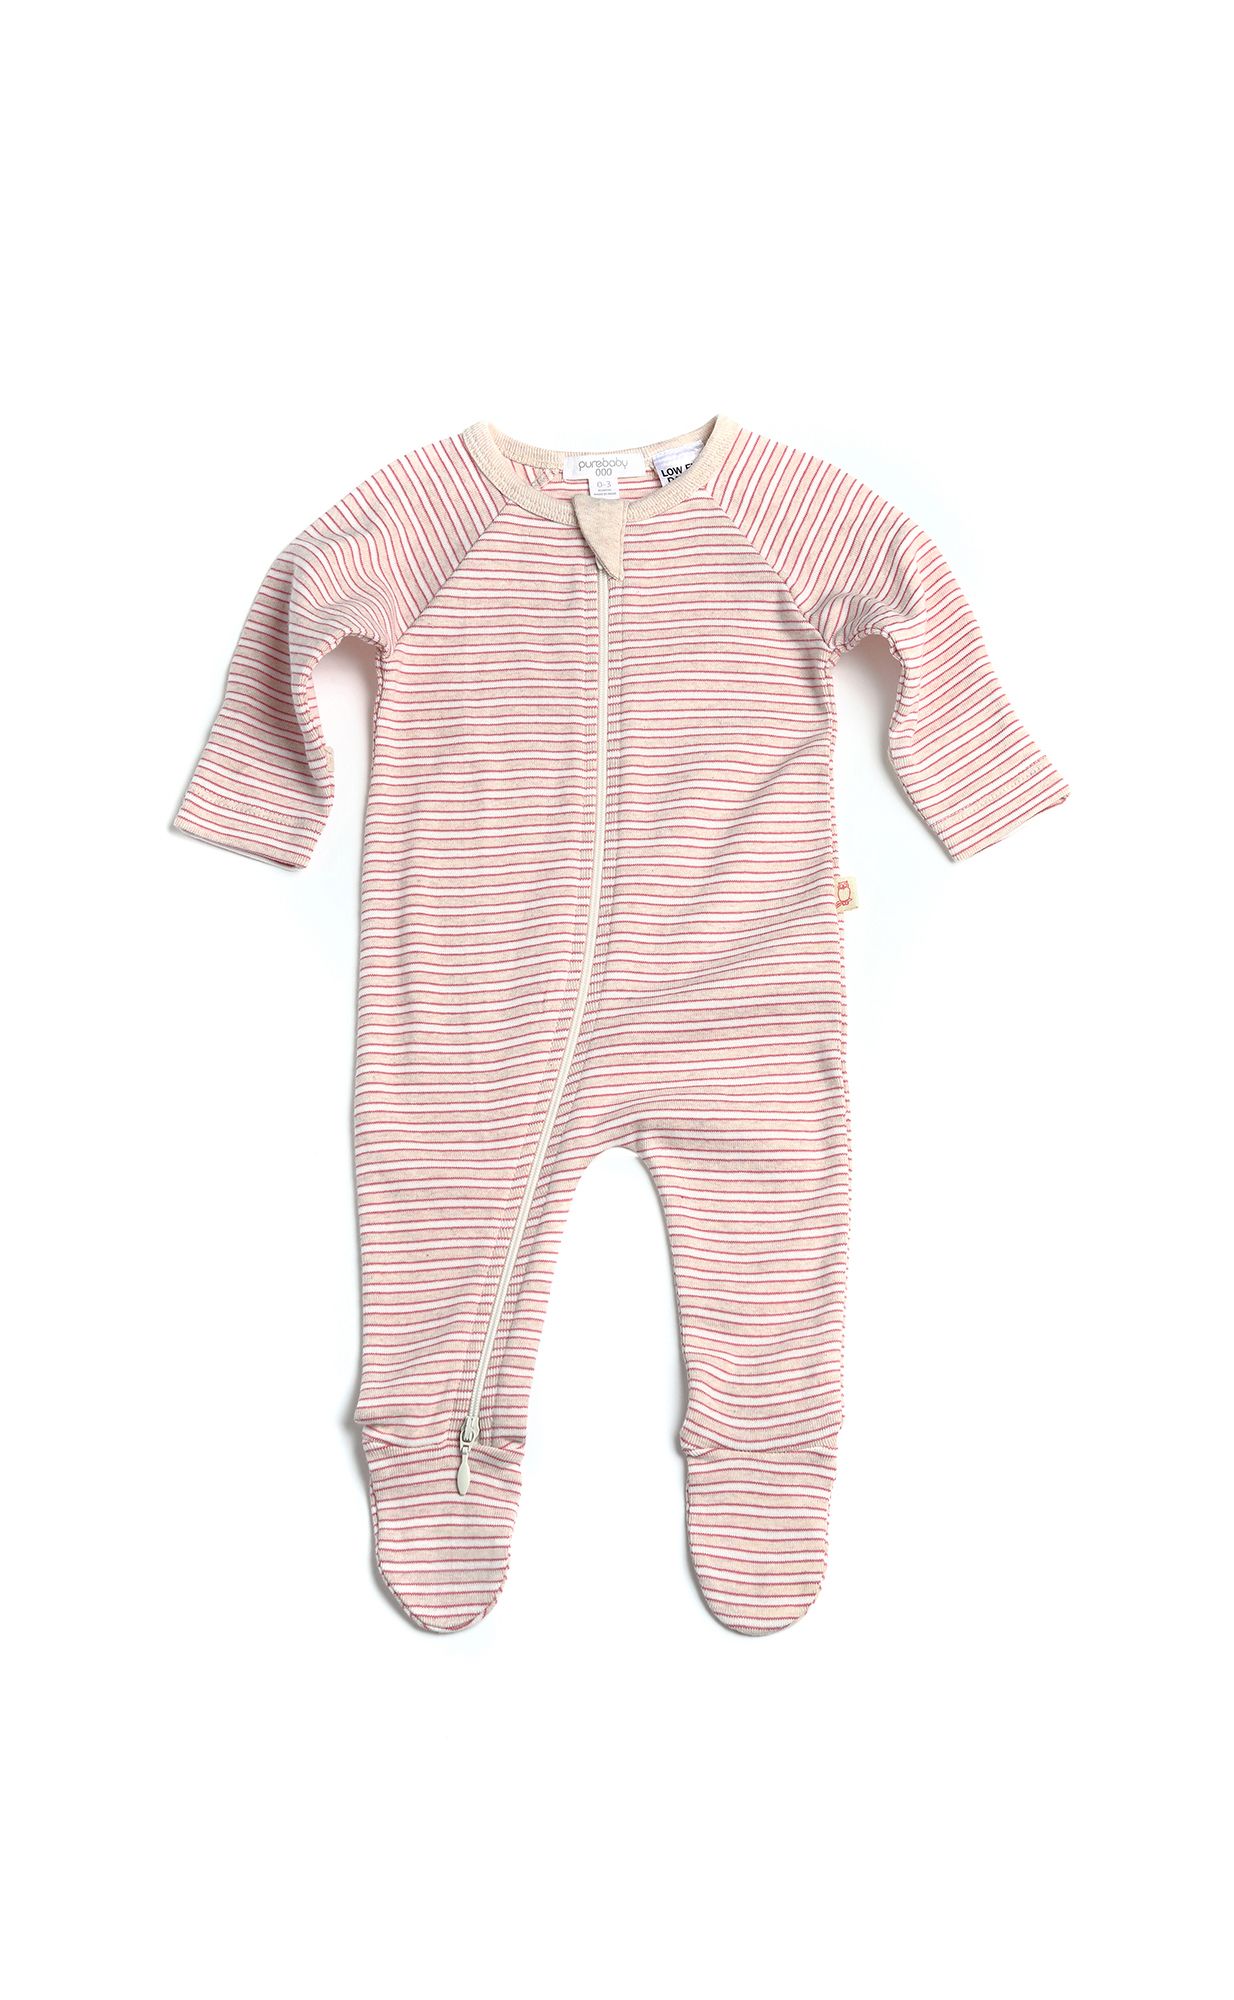 Purebaby Girls Sleep Growsuit Iceberg Stripe - Size 00